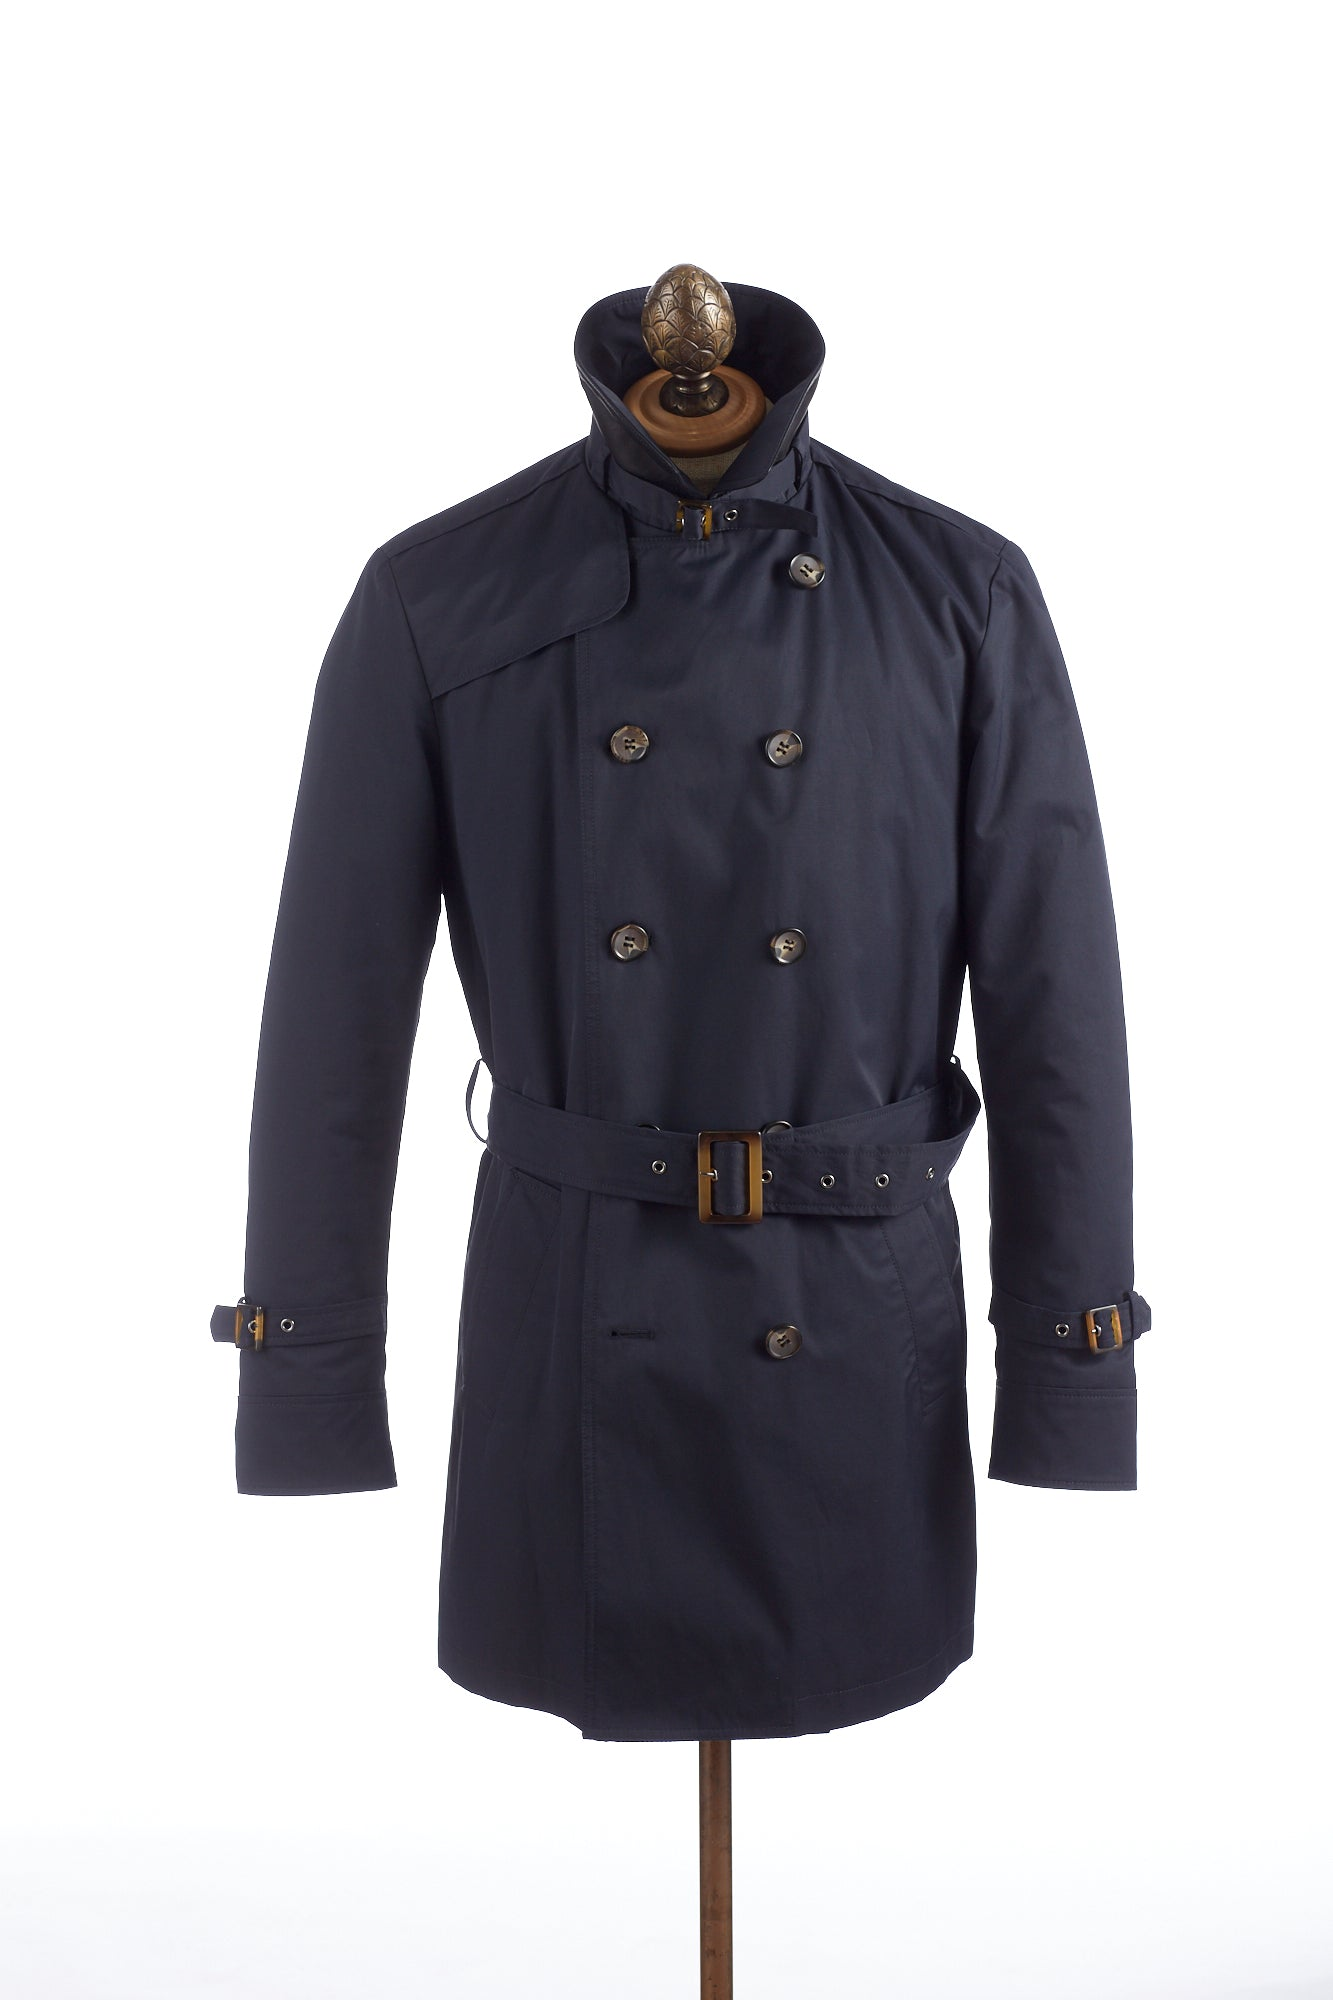 SAND Navy Double Breasted Trench Coat Popped Collar